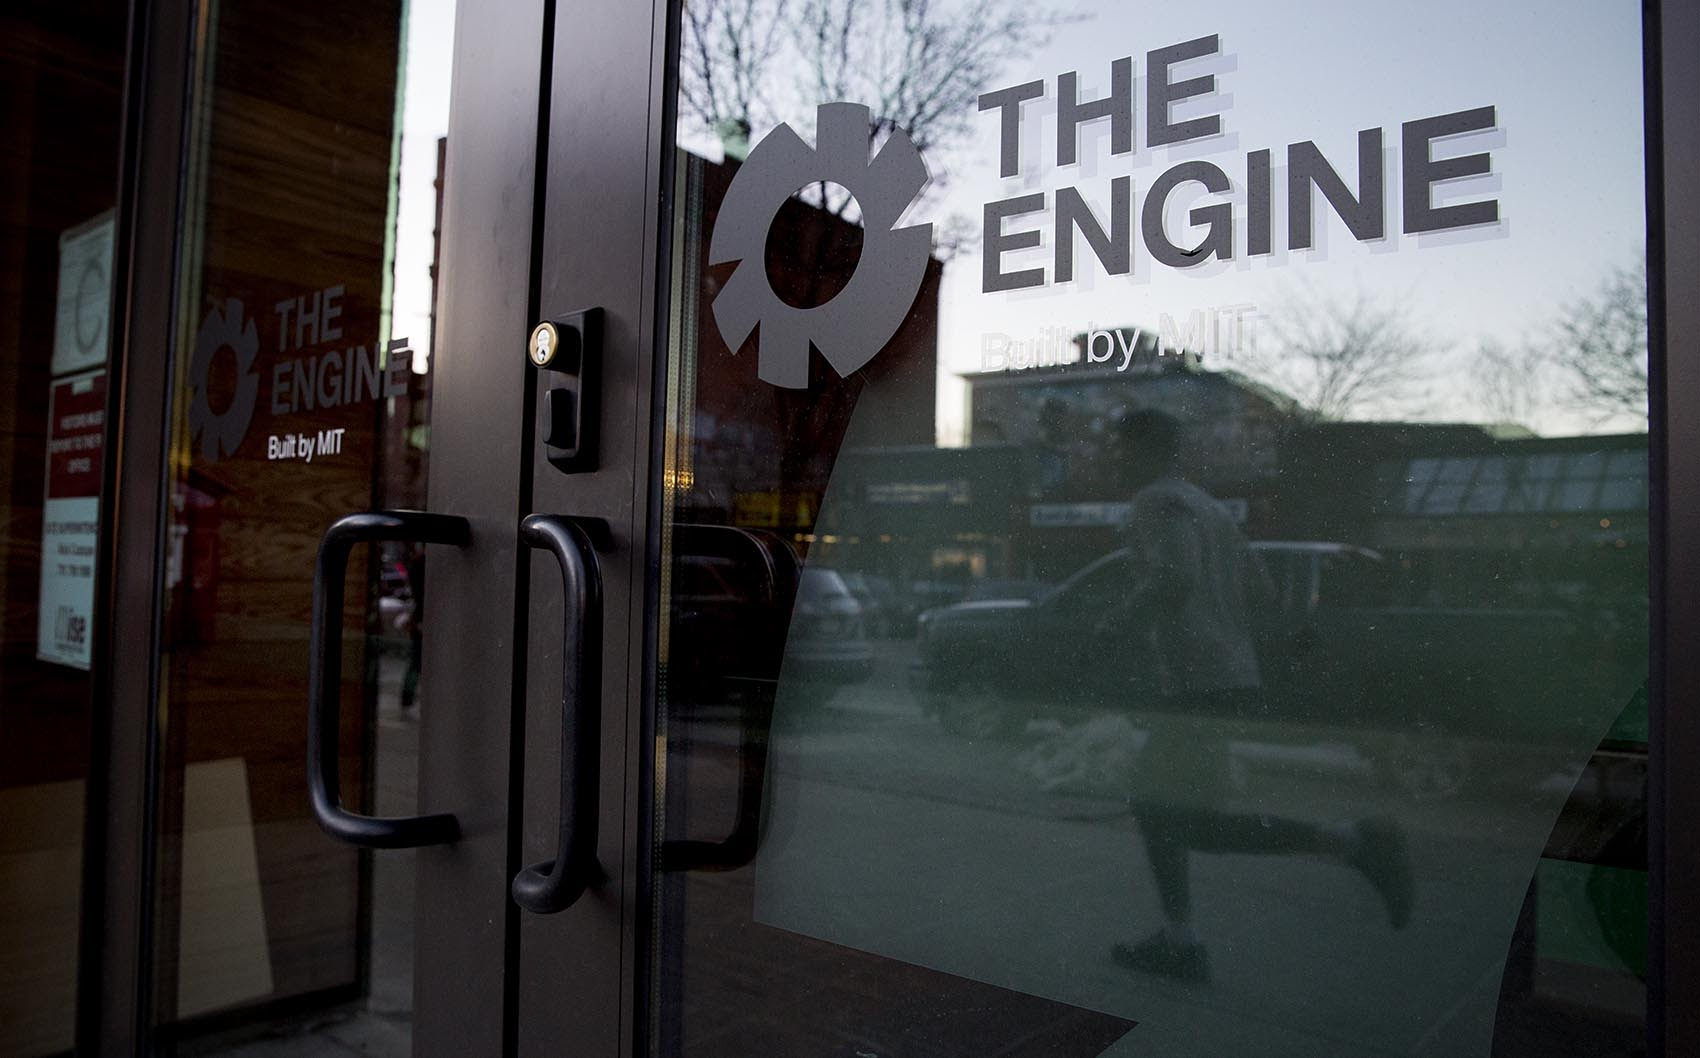 wbur.org - The Engine: What A New MIT Accelerator Could Mean For Boston Tech